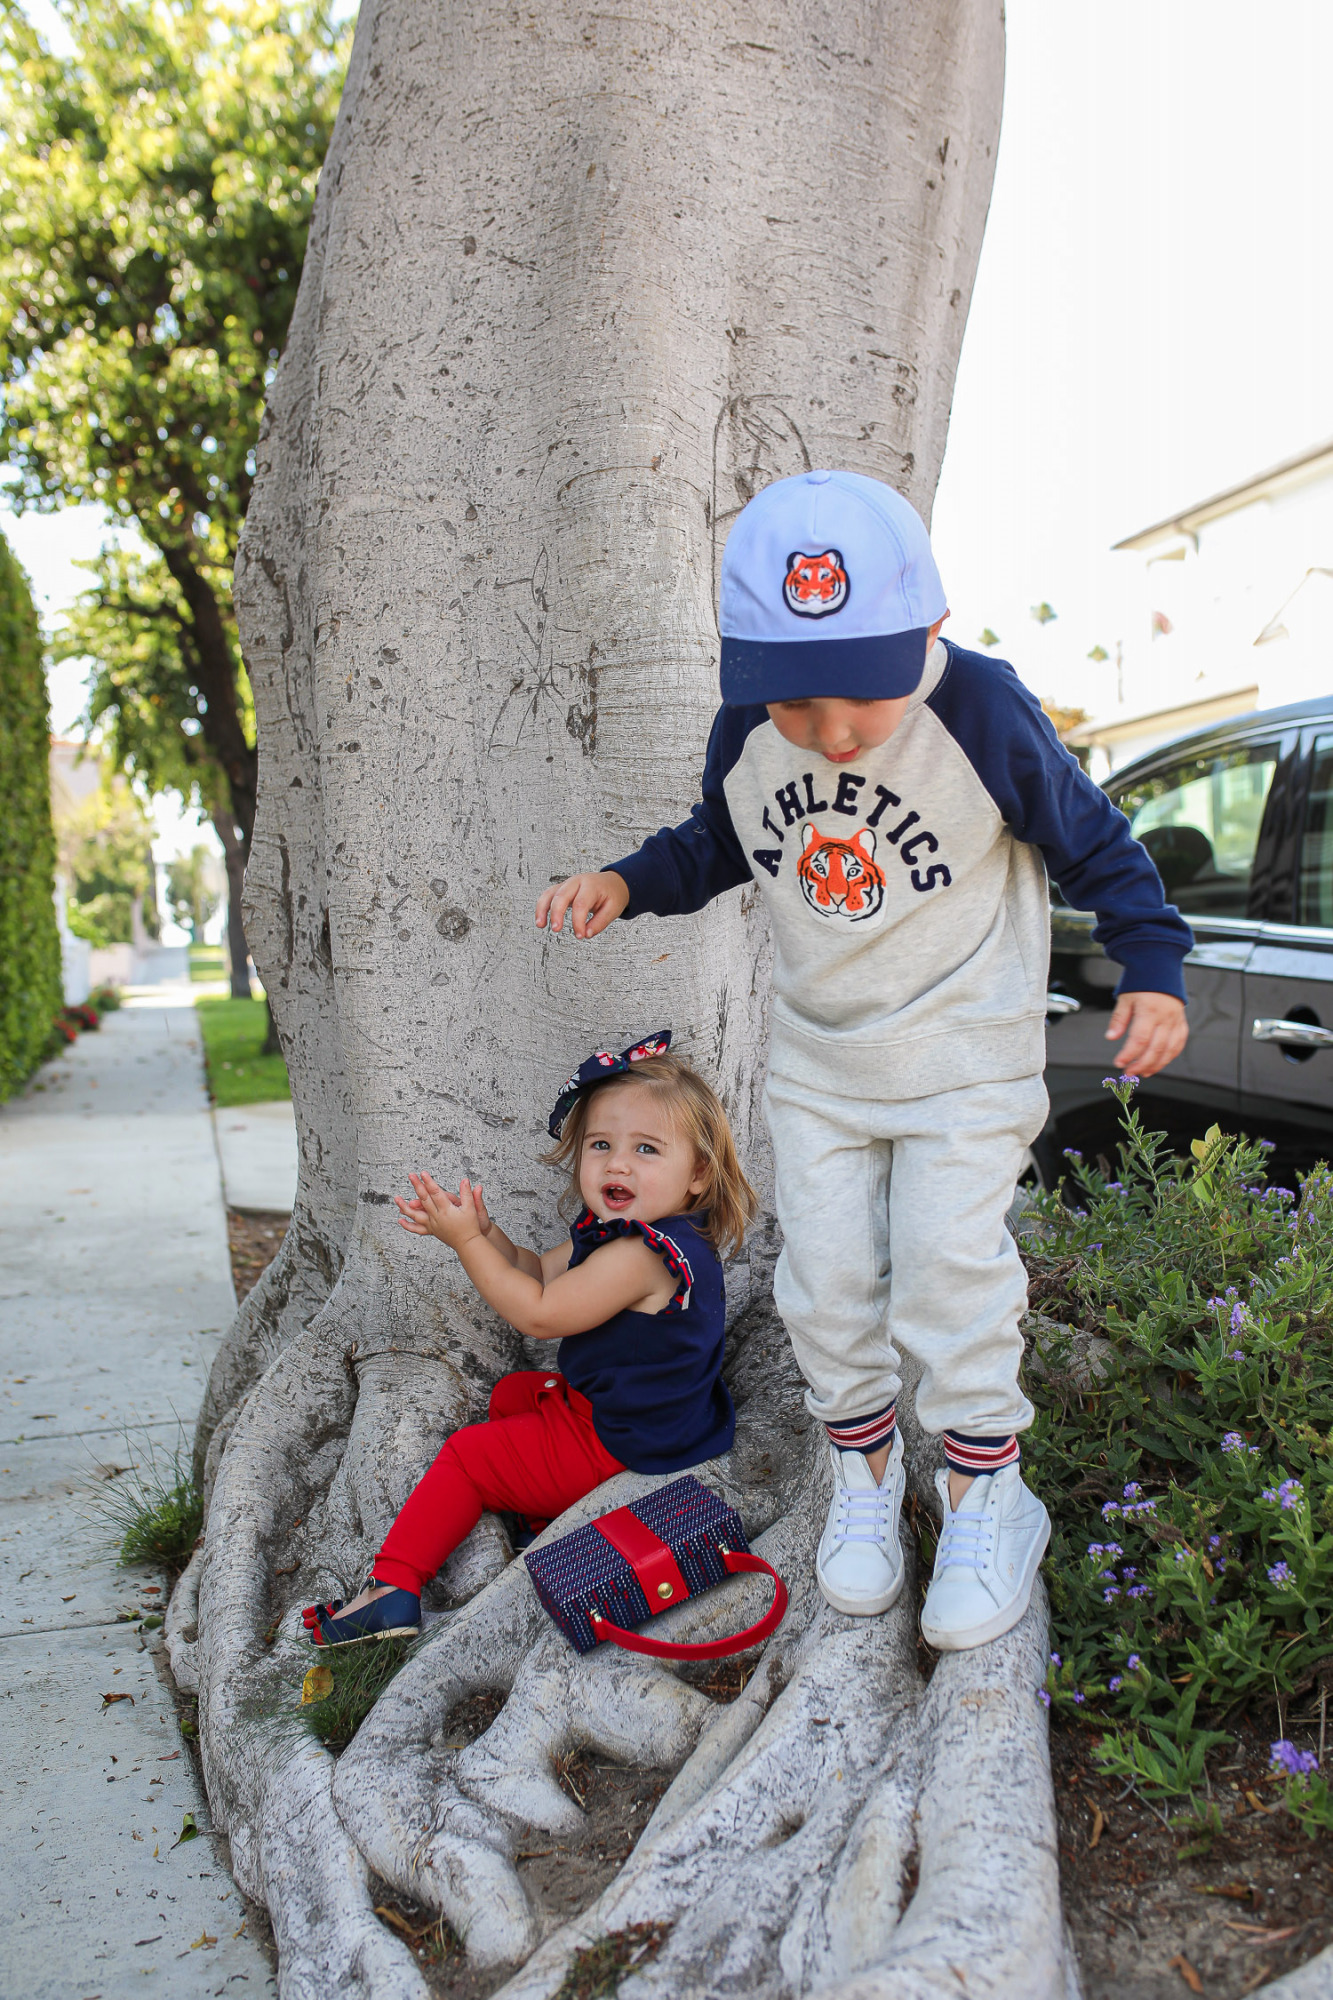 Janie and Jack by popular US fashion Blog, The Sweetest Thing: image of two kids walking outside on a sidewalk in Newport Beach, CA and wearing a Janie and Jack TIGER PATCH CAP, Janie and Jack RAGLAN TIGER SWEATSHIRT, Janie and Jack STRIPE TRIM JOGGER, Janie and Jack PLEATED SLEEVE TOP, Janie and Jack BUTTON PONTE PANT, Janie and Jack BOW ANKLE STRAP FLAT, FLORAL BOW BARRETTE, and Janie and Jack BOUCLÉ PURSE.